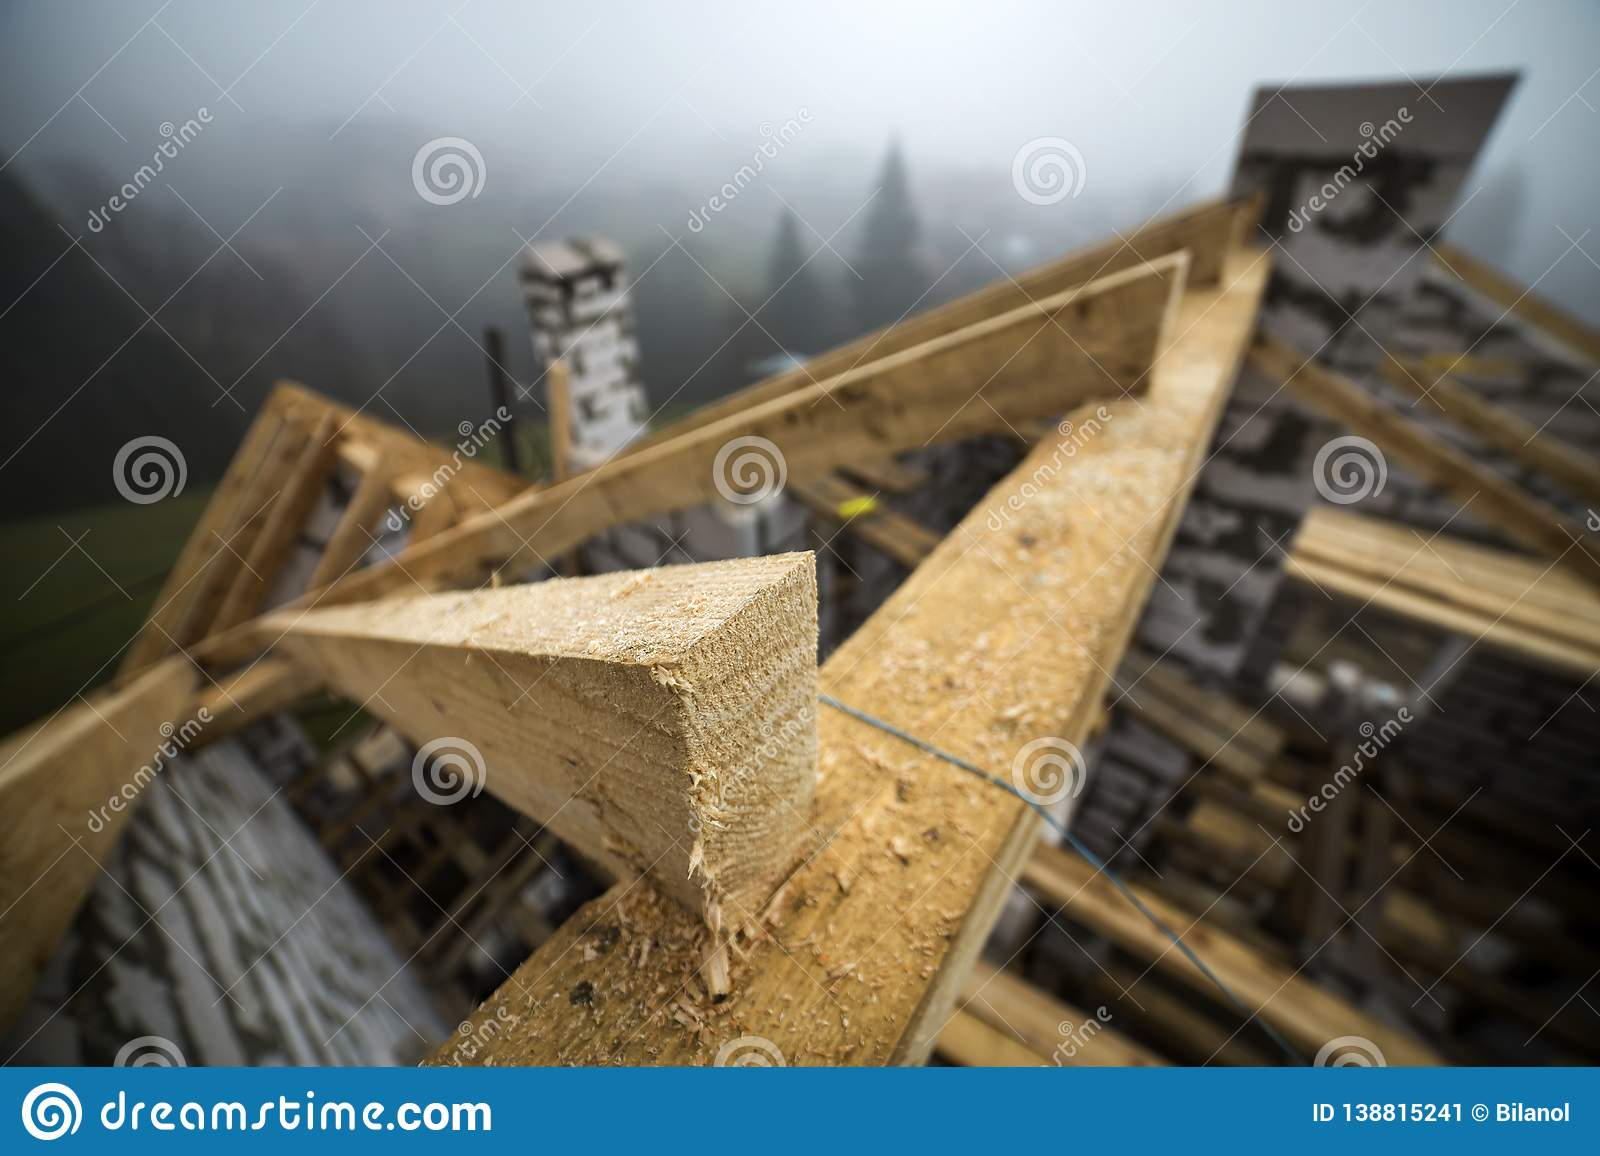 Top View Of Roof Frame From Wooden Lumber Beams And Planks